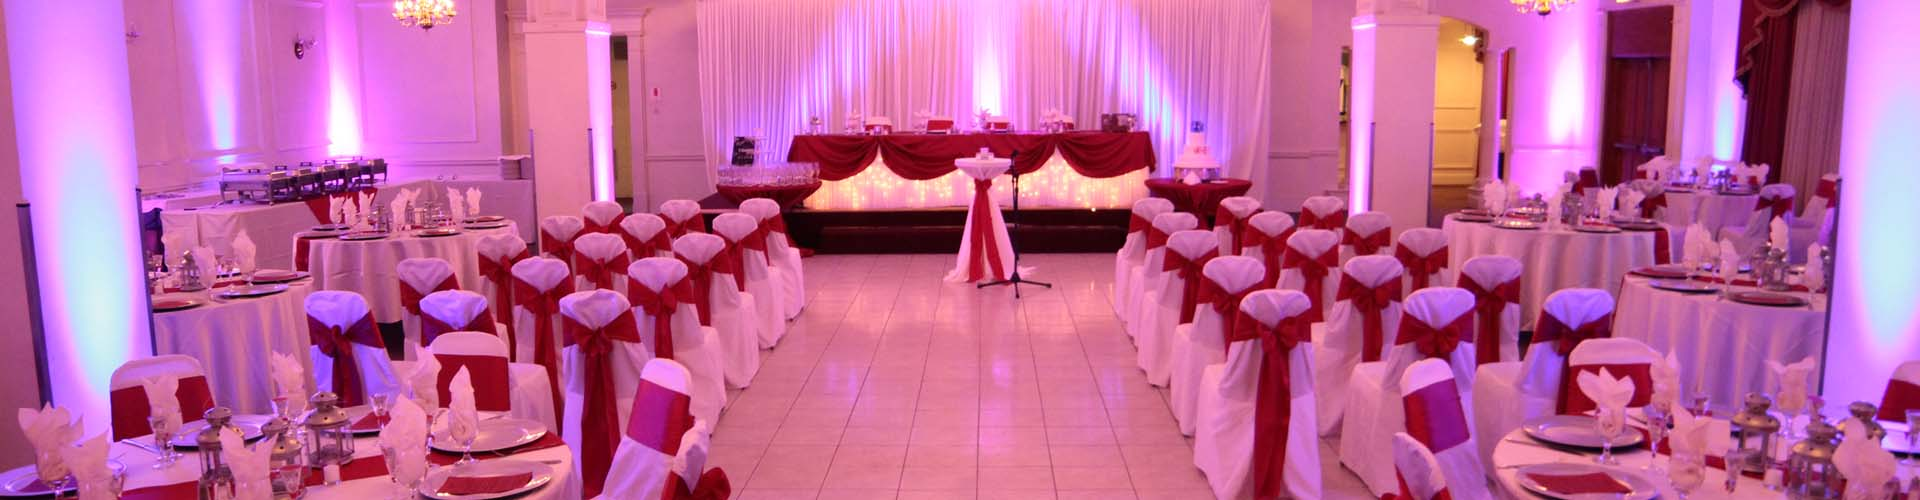 affordable chair covers airbag prank gif millenium decorations catering banquet hall chicago ballroom weddings ...